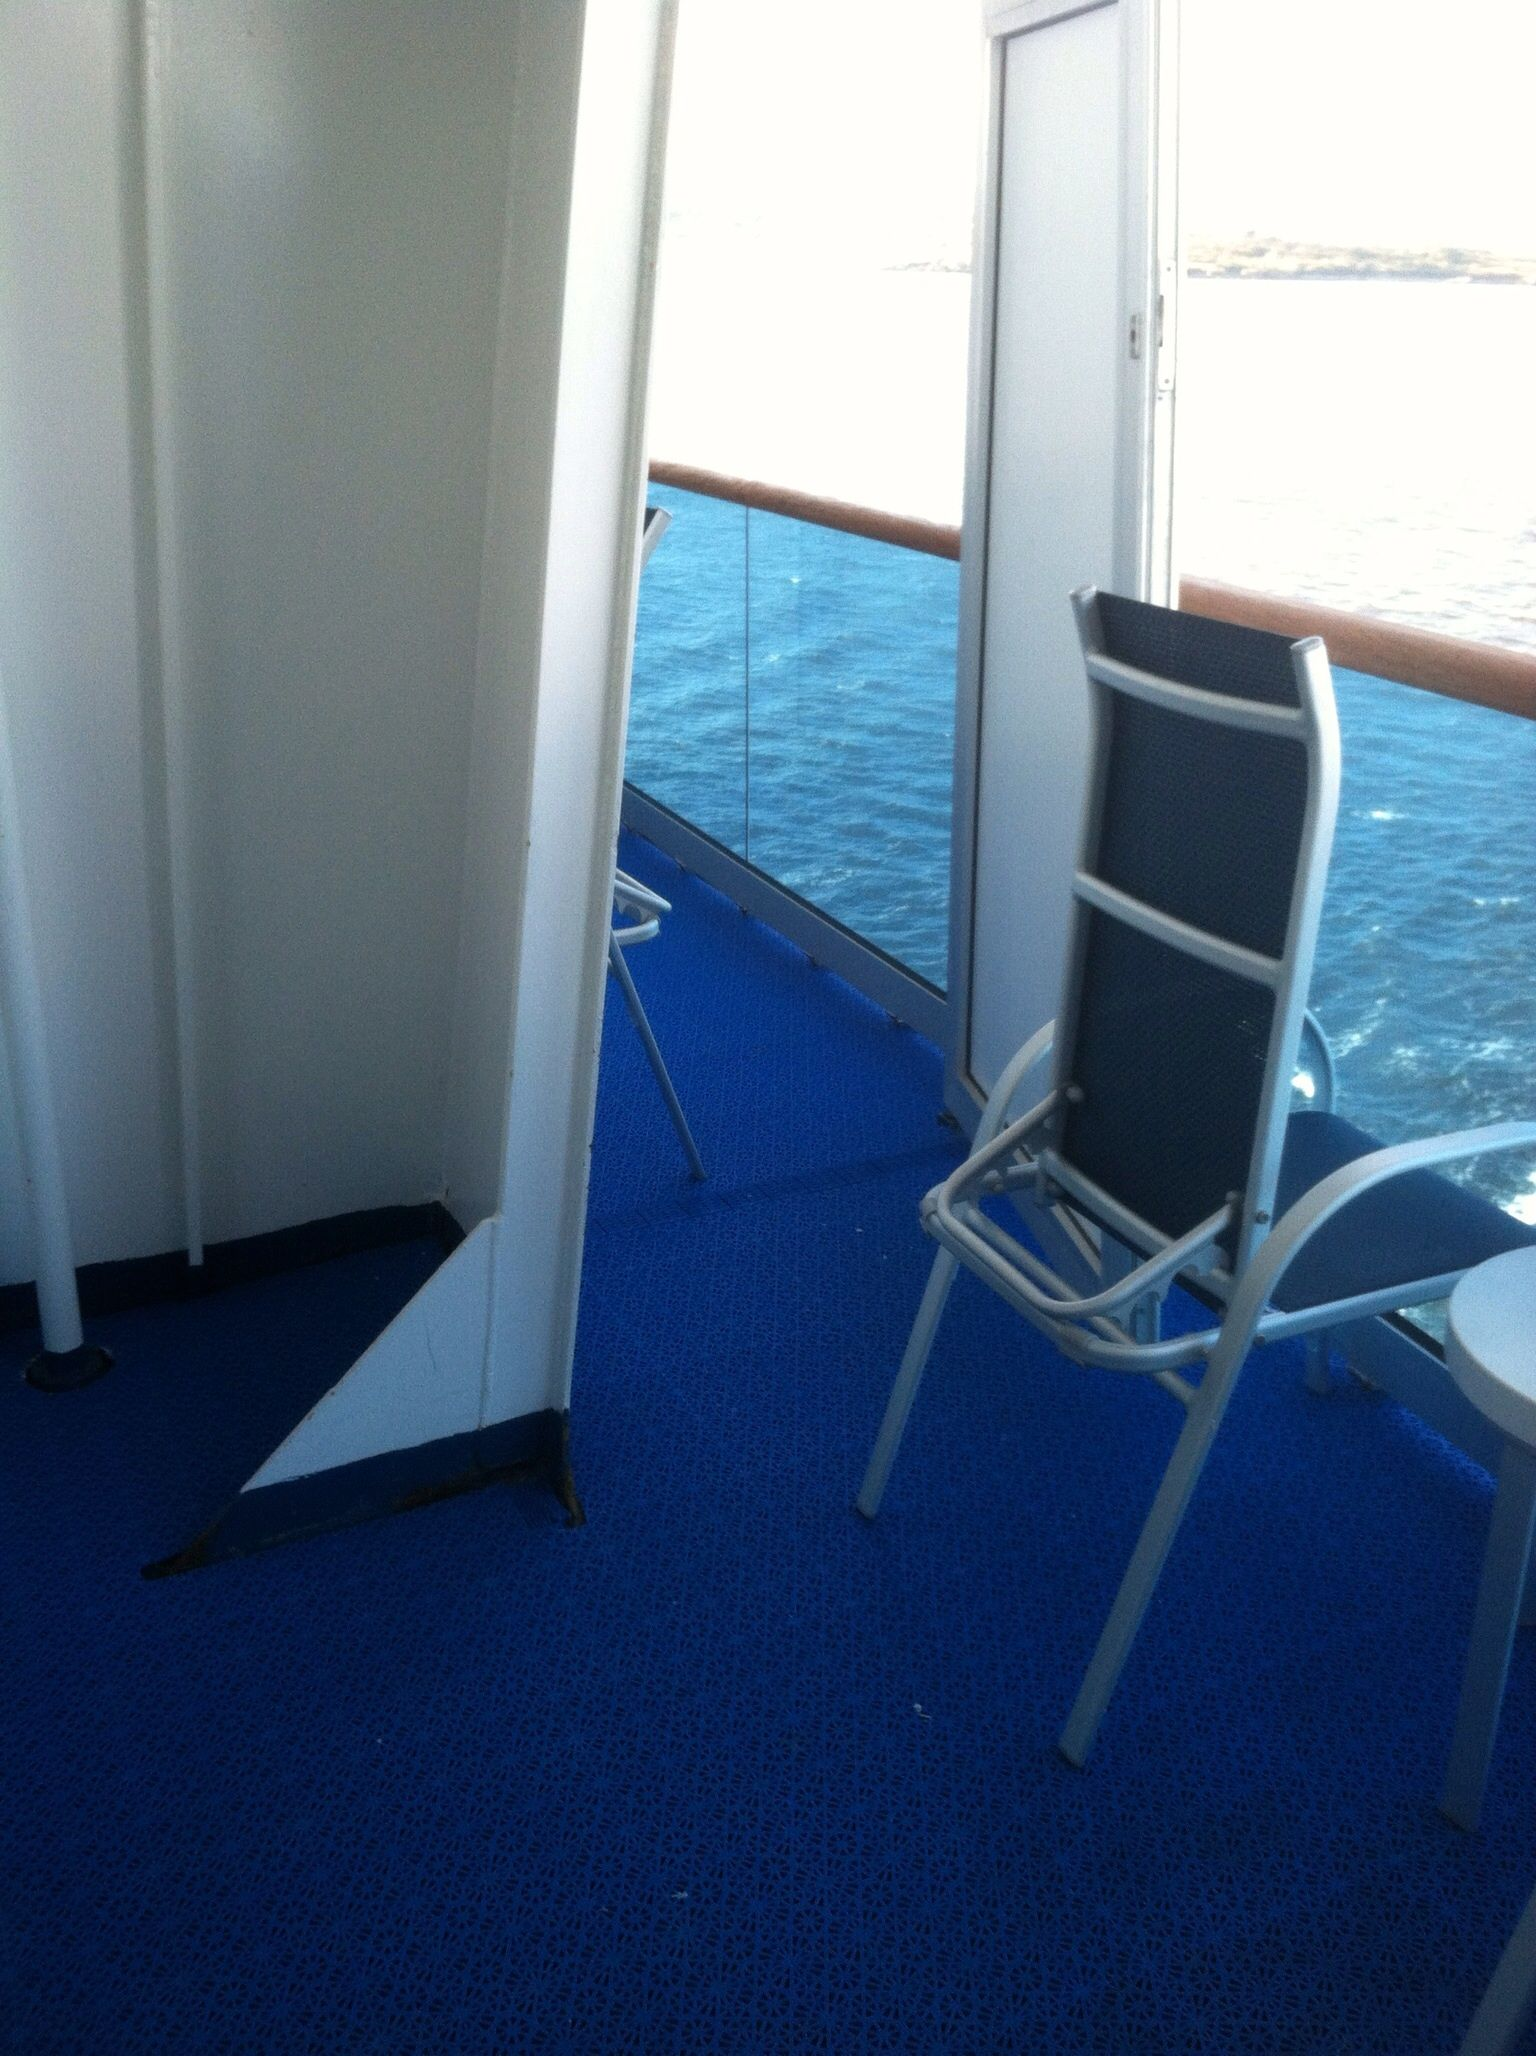 Stateroom B752 Caribbean Princess small obstruction Not